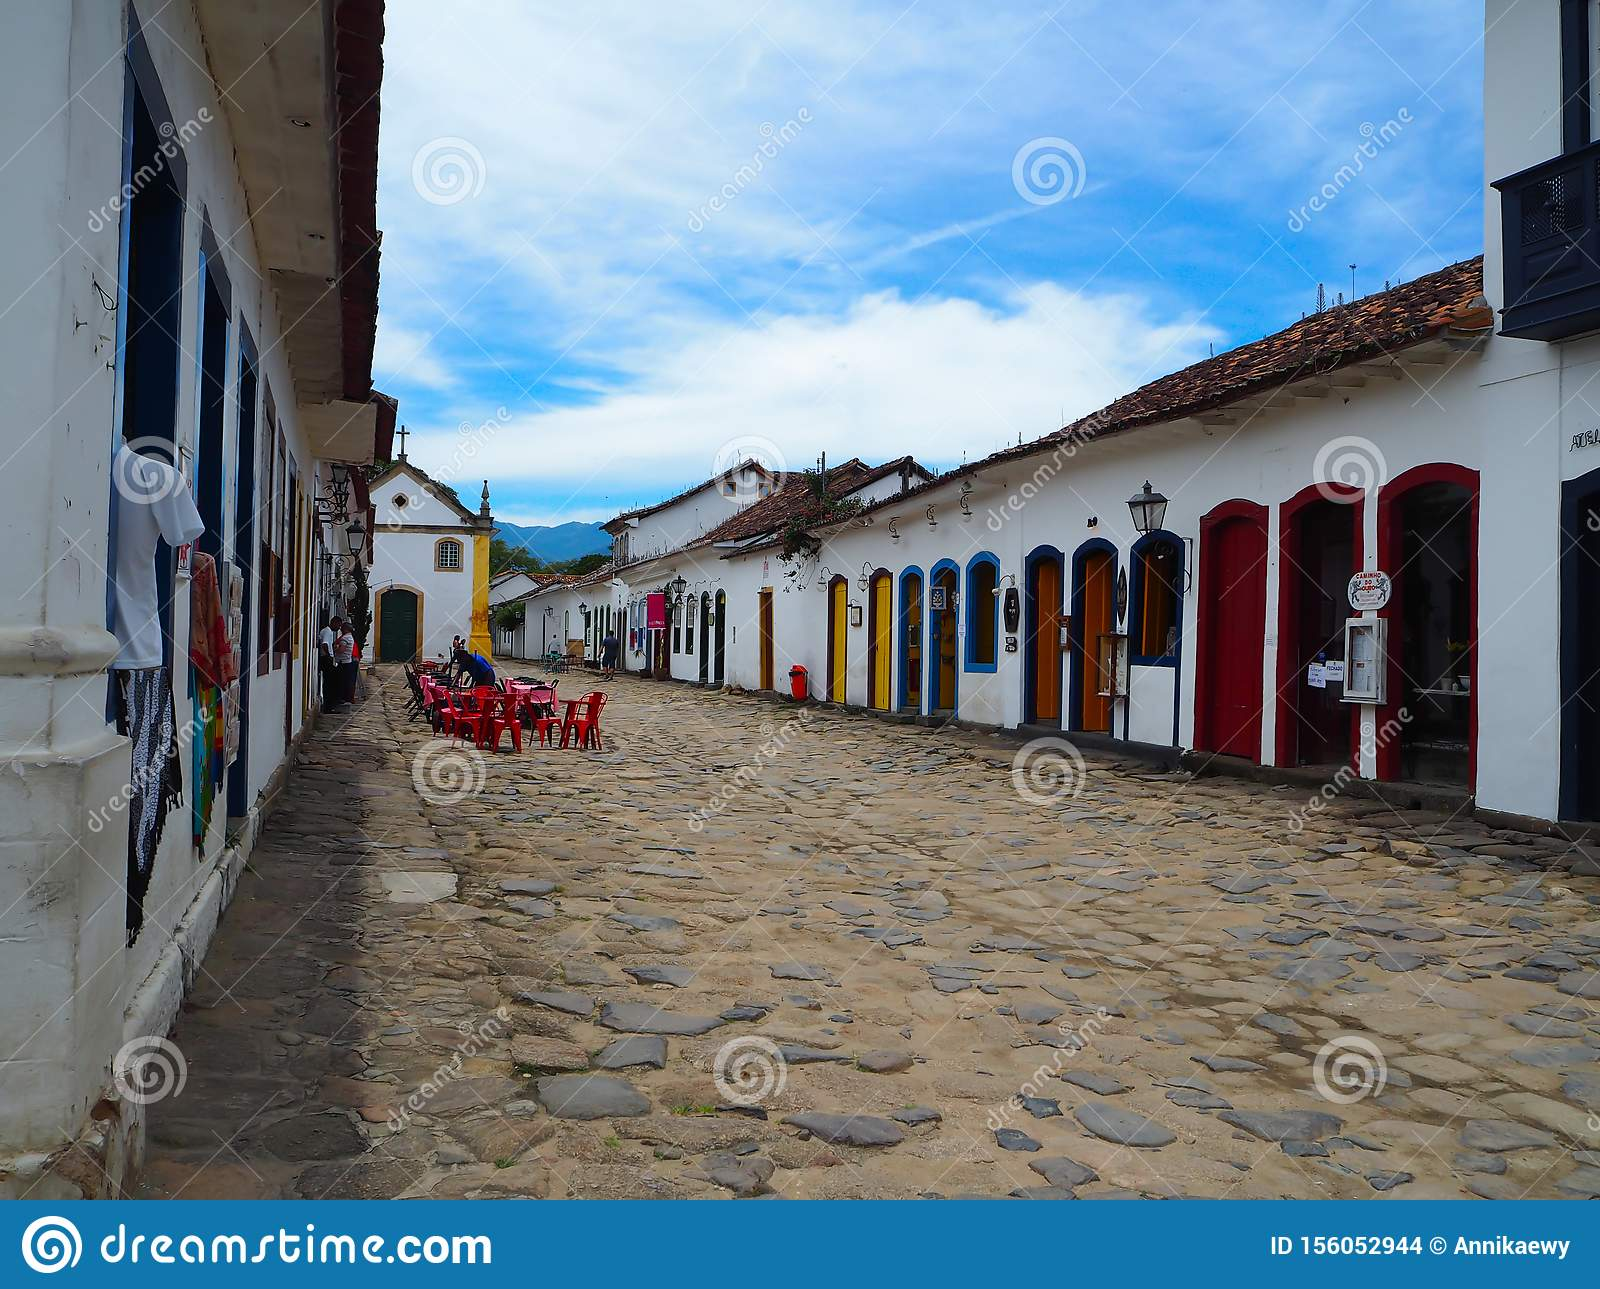 Parati, Brasil - 23 December 2016: Sweet and colorful houses in colonial style with cobblestone floor in Parati, Brasil